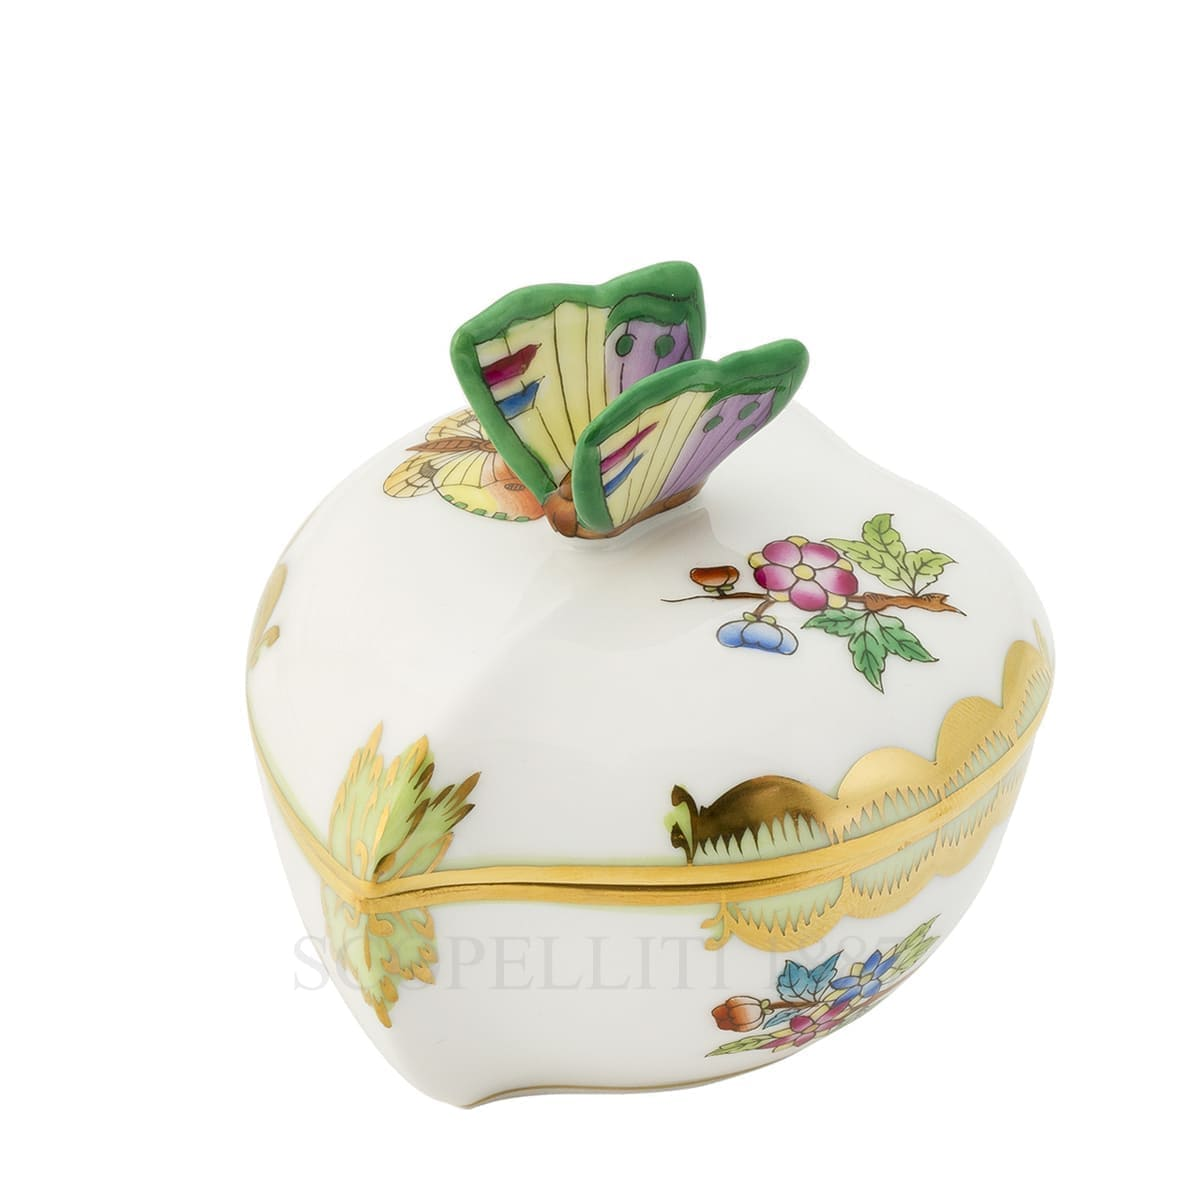 Herend Queen Victoria Heart Box with Butterfly 6005-17 VBA